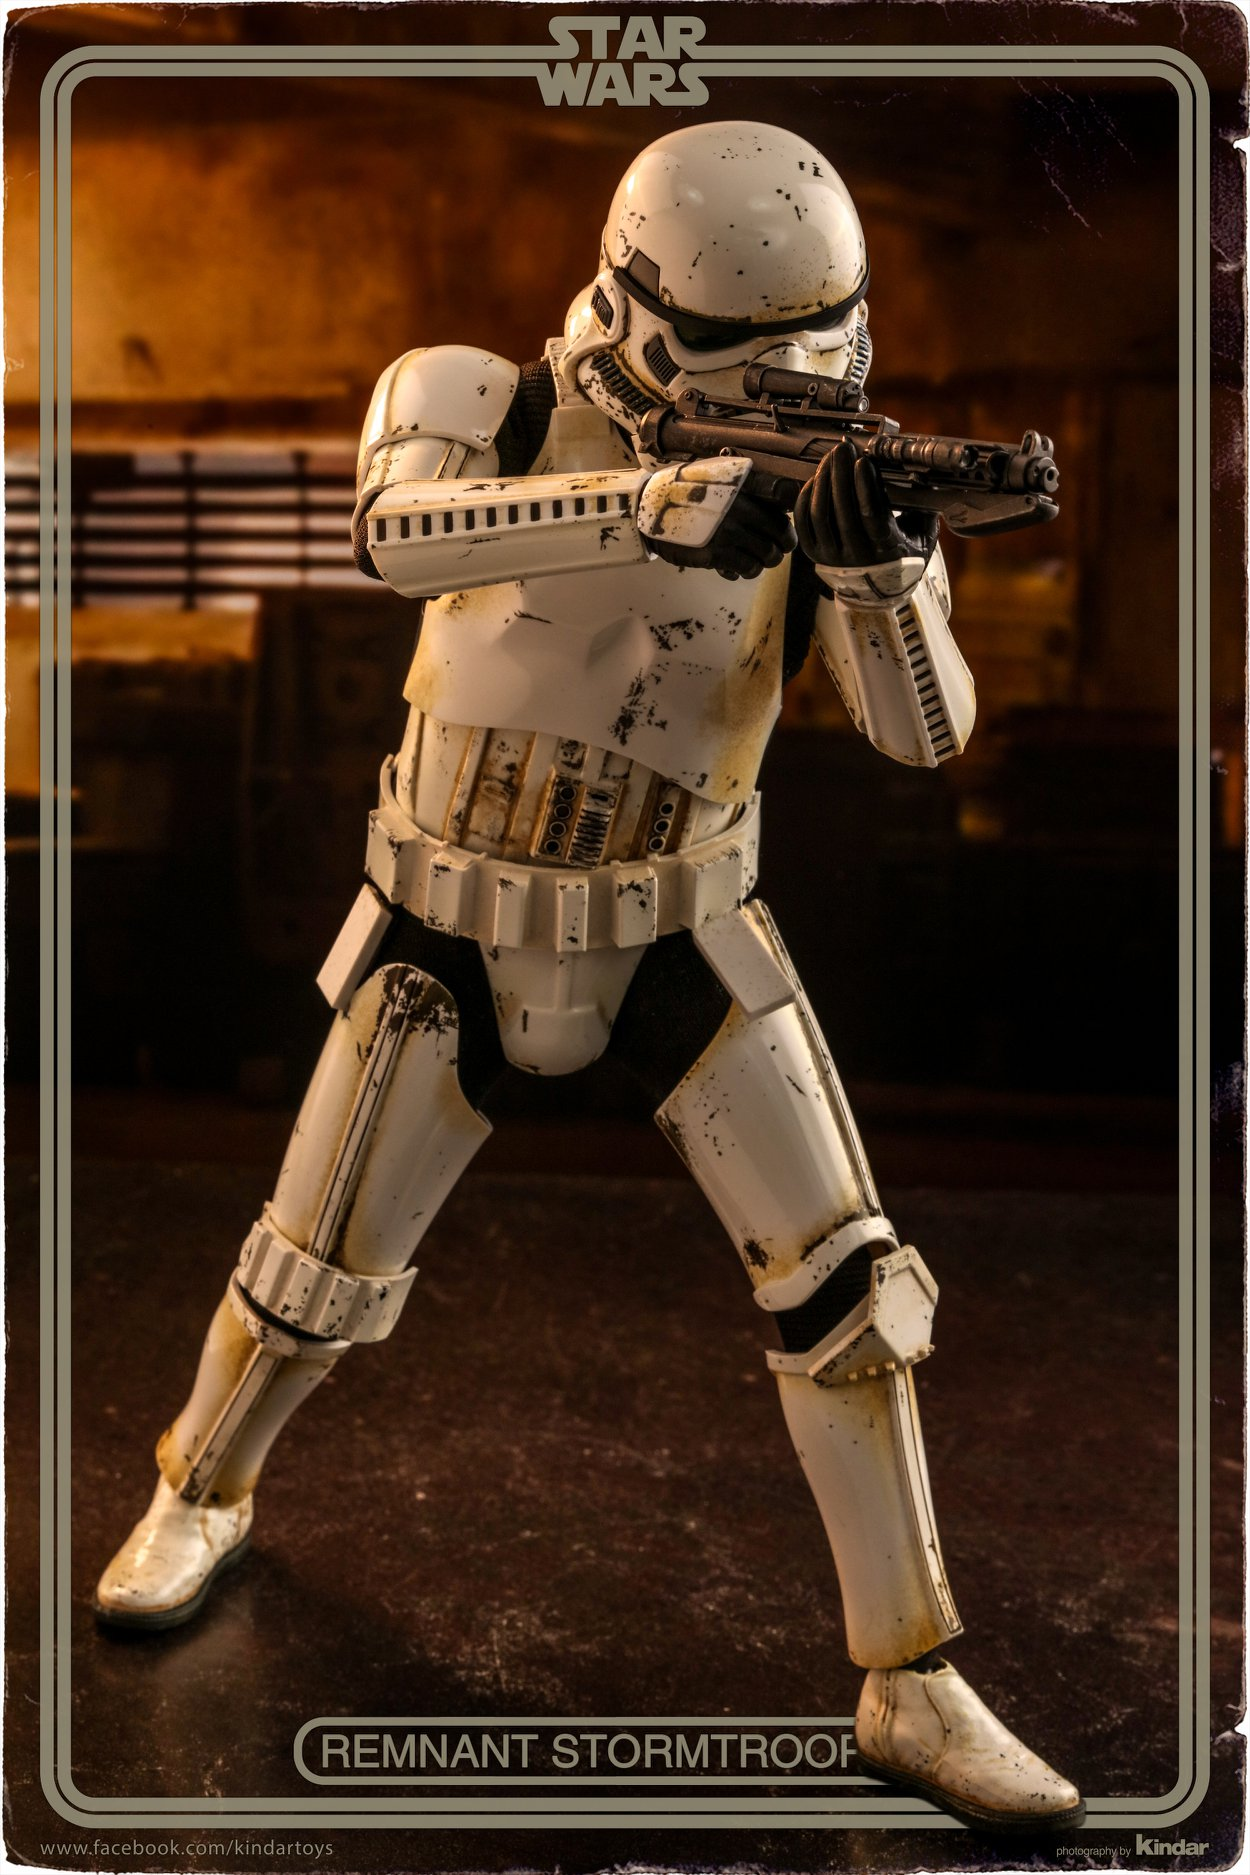 Hot Toys Remnant Stormtrooper Final